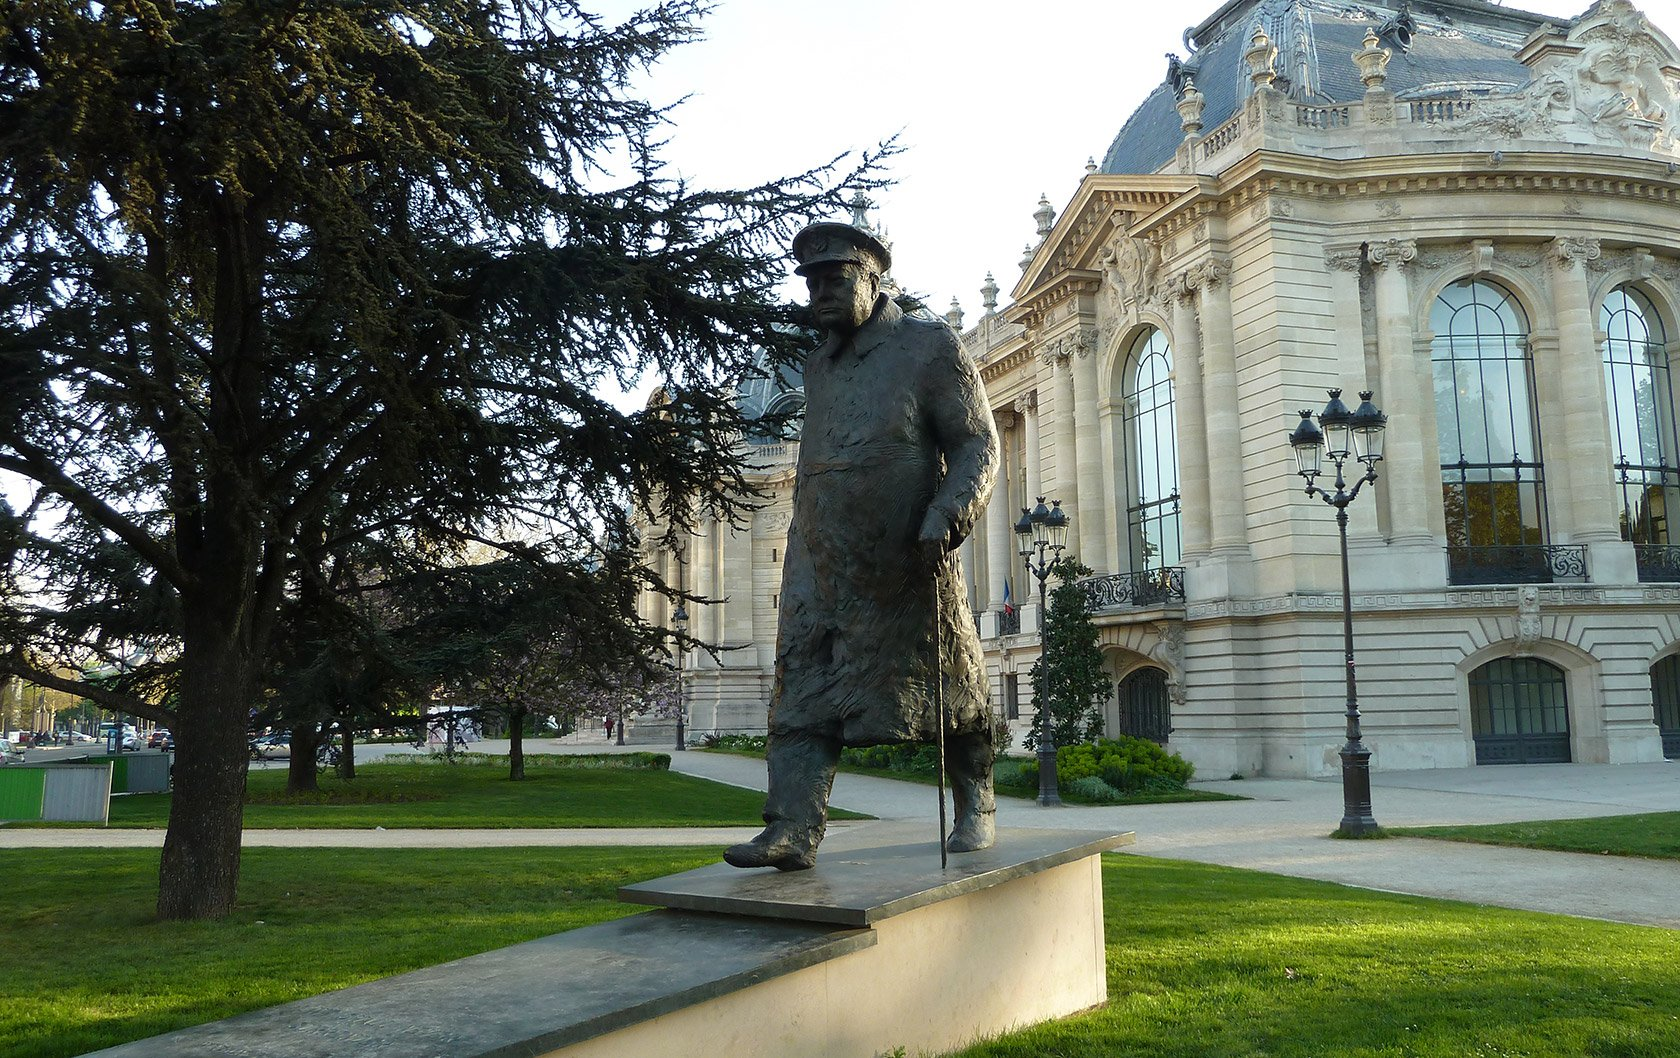 Paris Question on the Eve of D-Day: Where is this Statue?